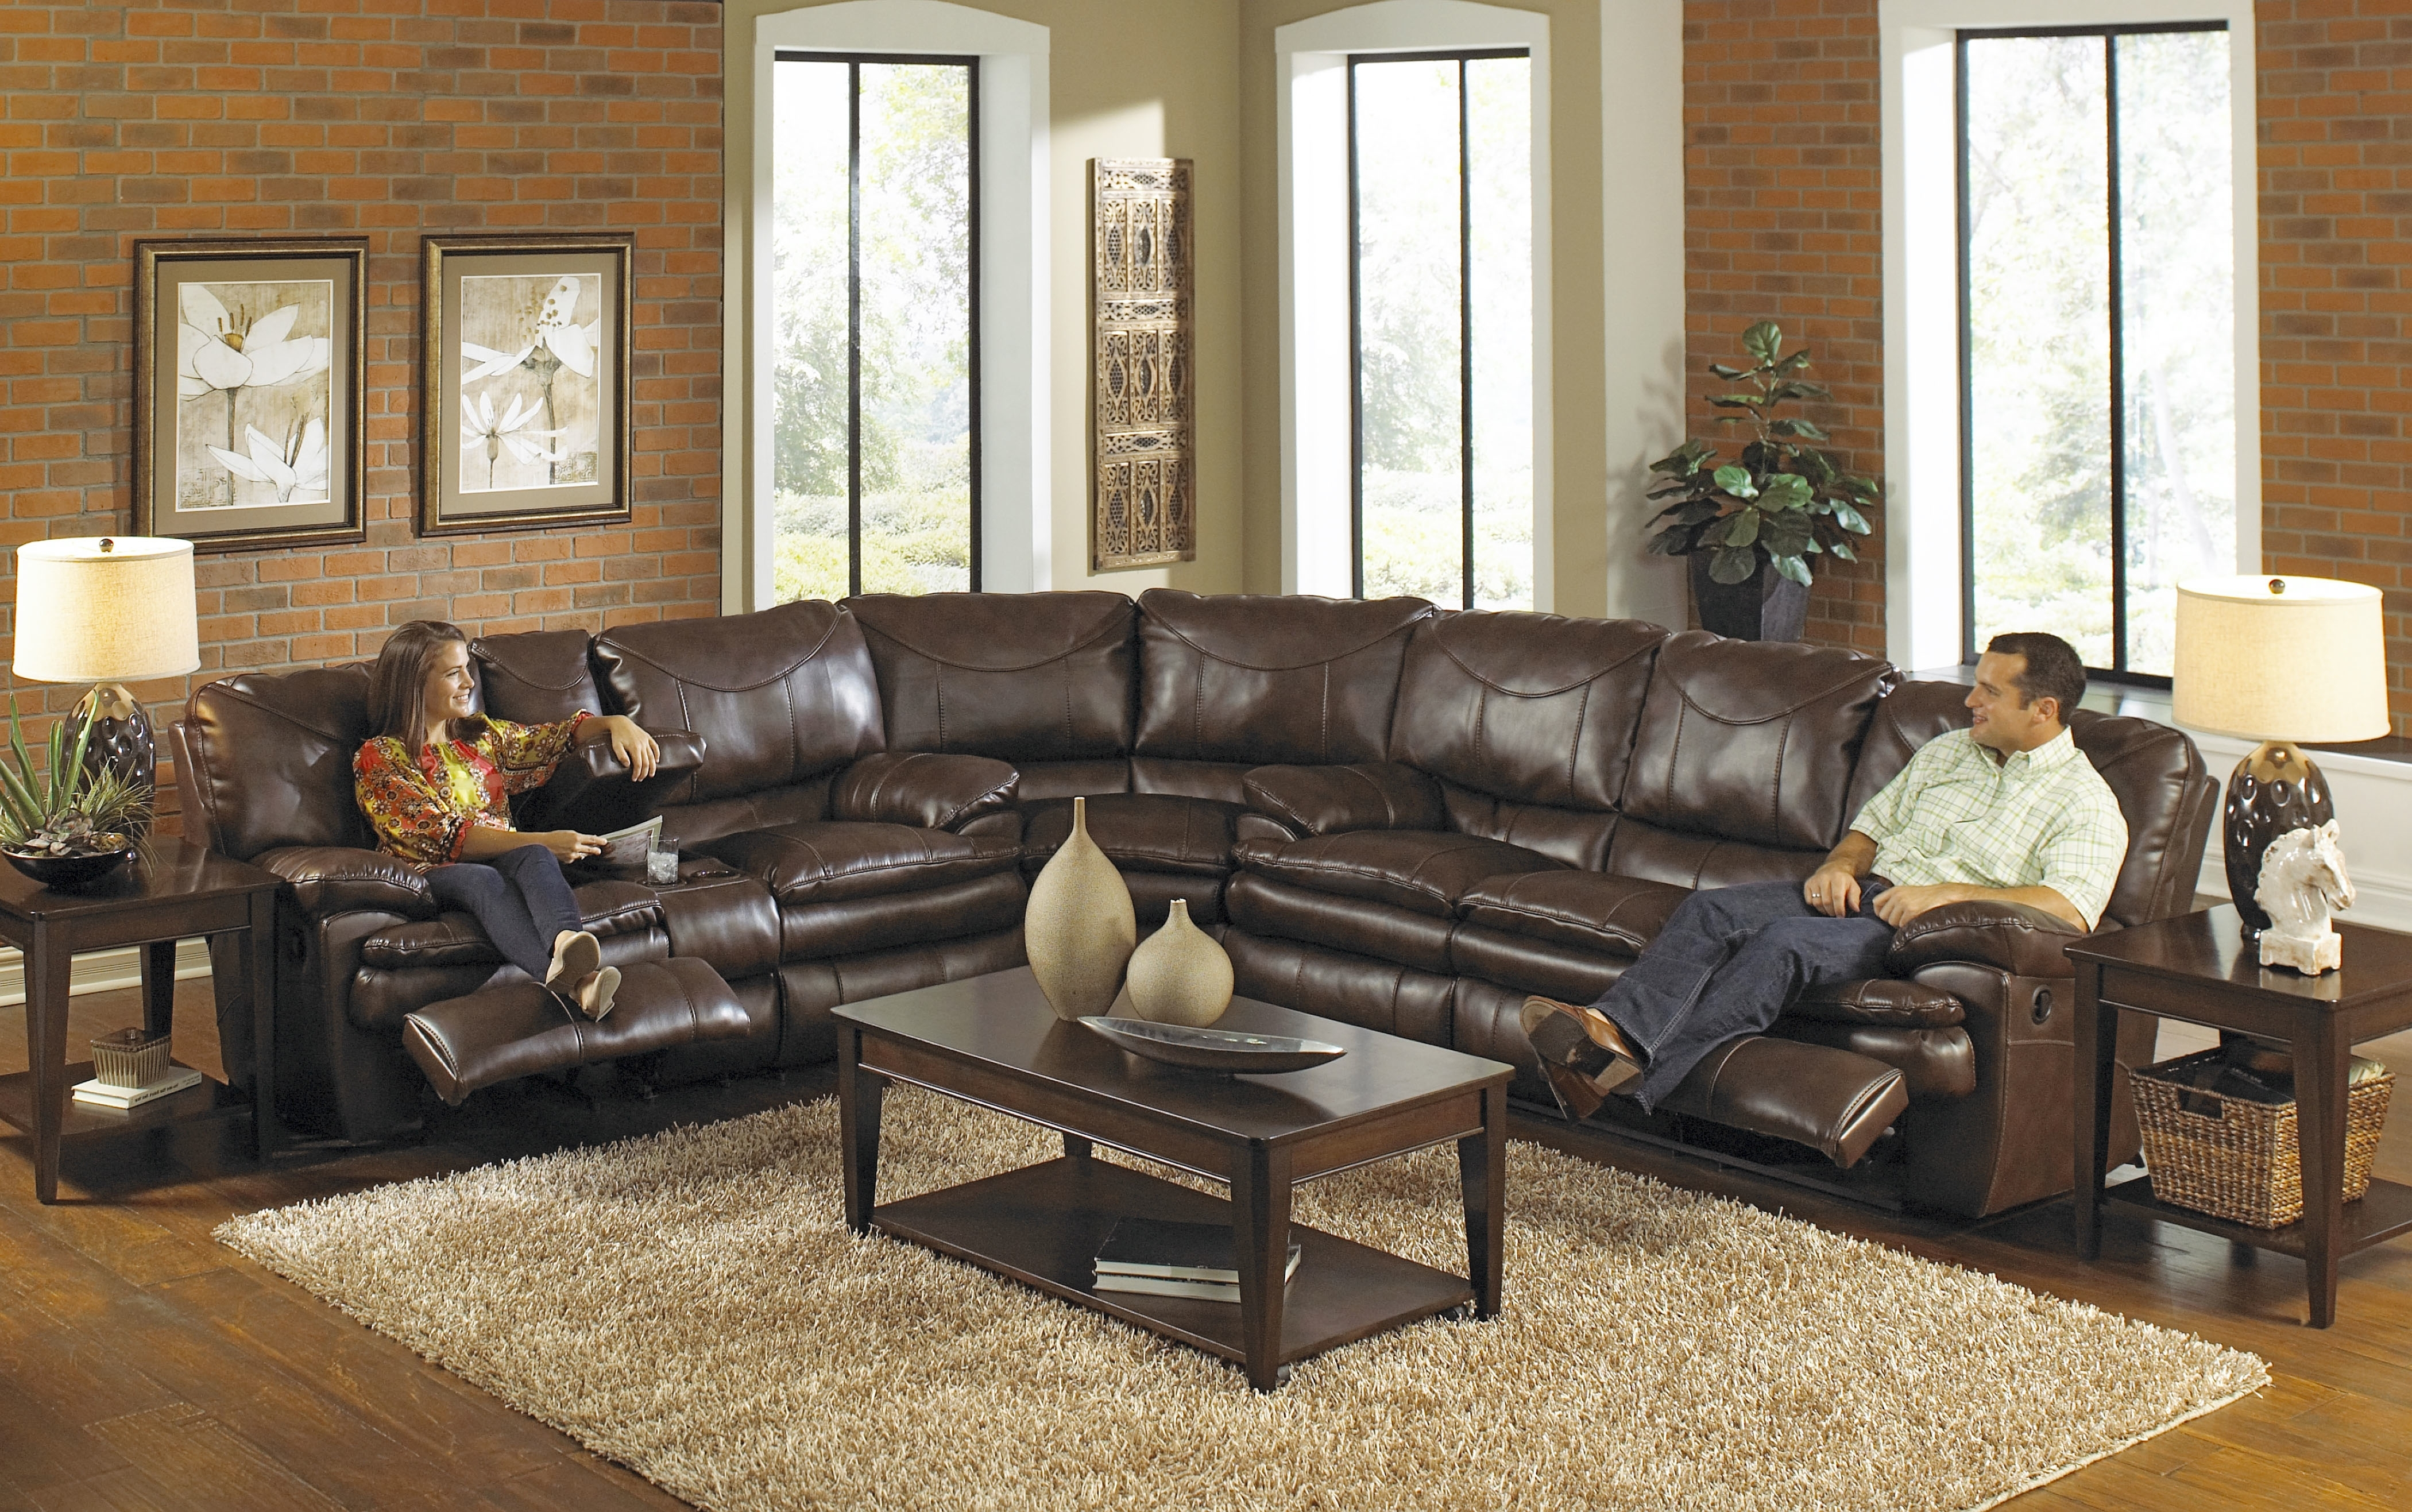 Delivered Sofa With Chaise And Recliner Buy Large Sectional Sofas With Popular Virginia Sectional Sofas (View 4 of 15)